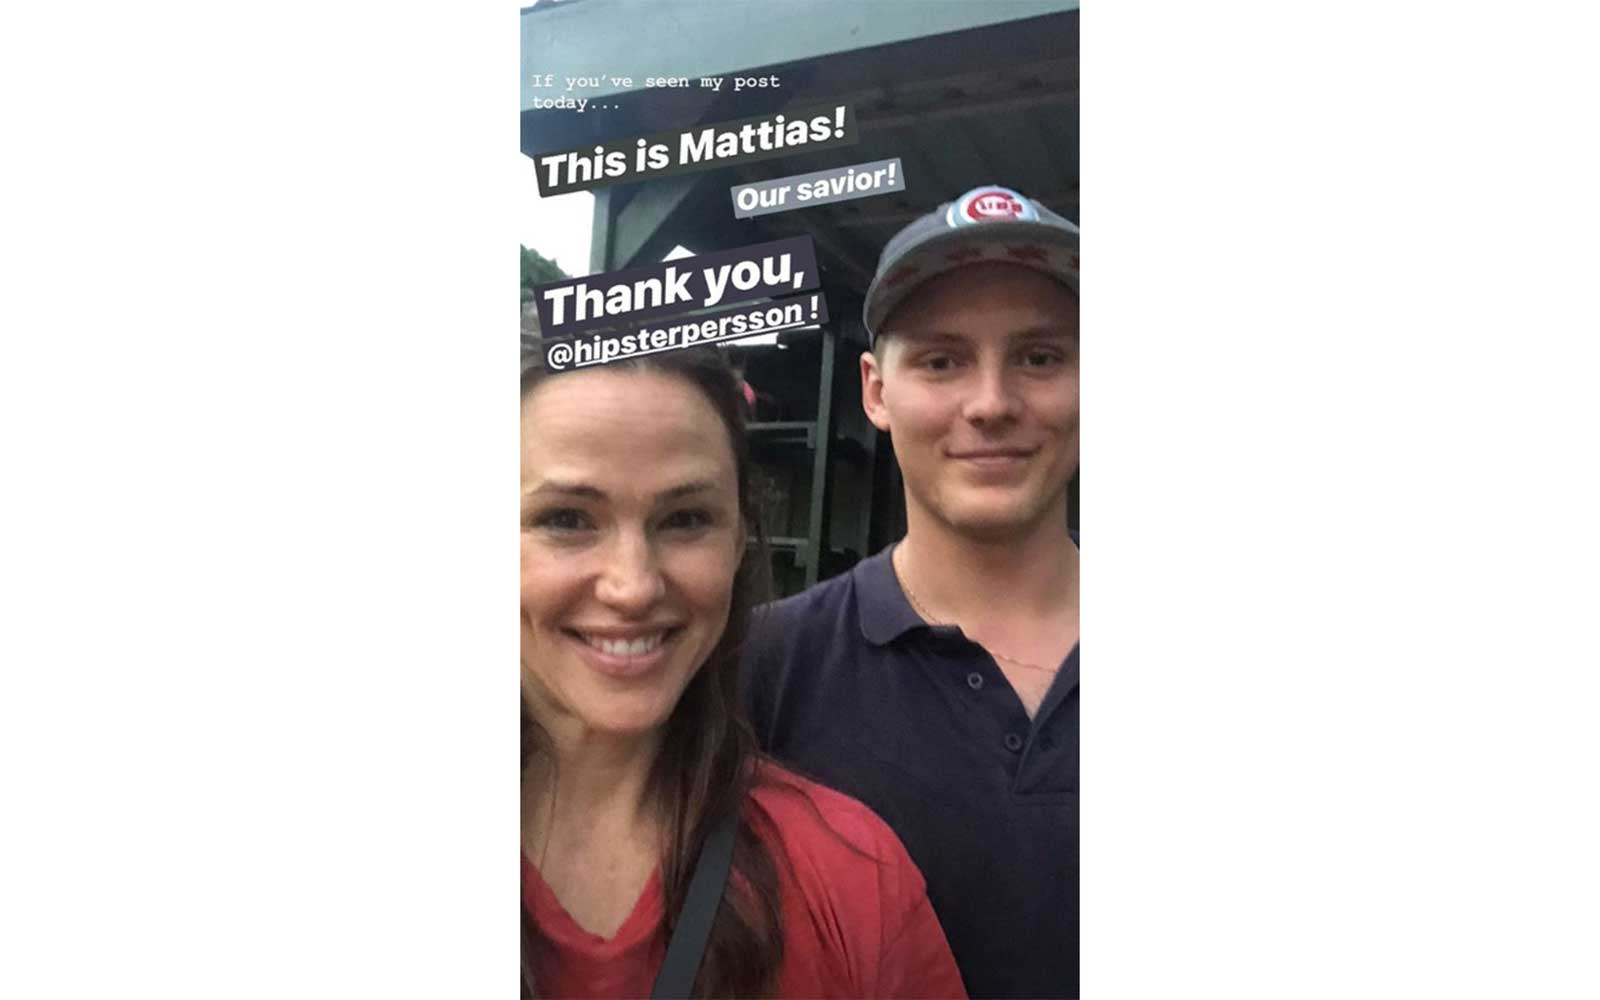 Jennifer Garner with her savior, Mattias